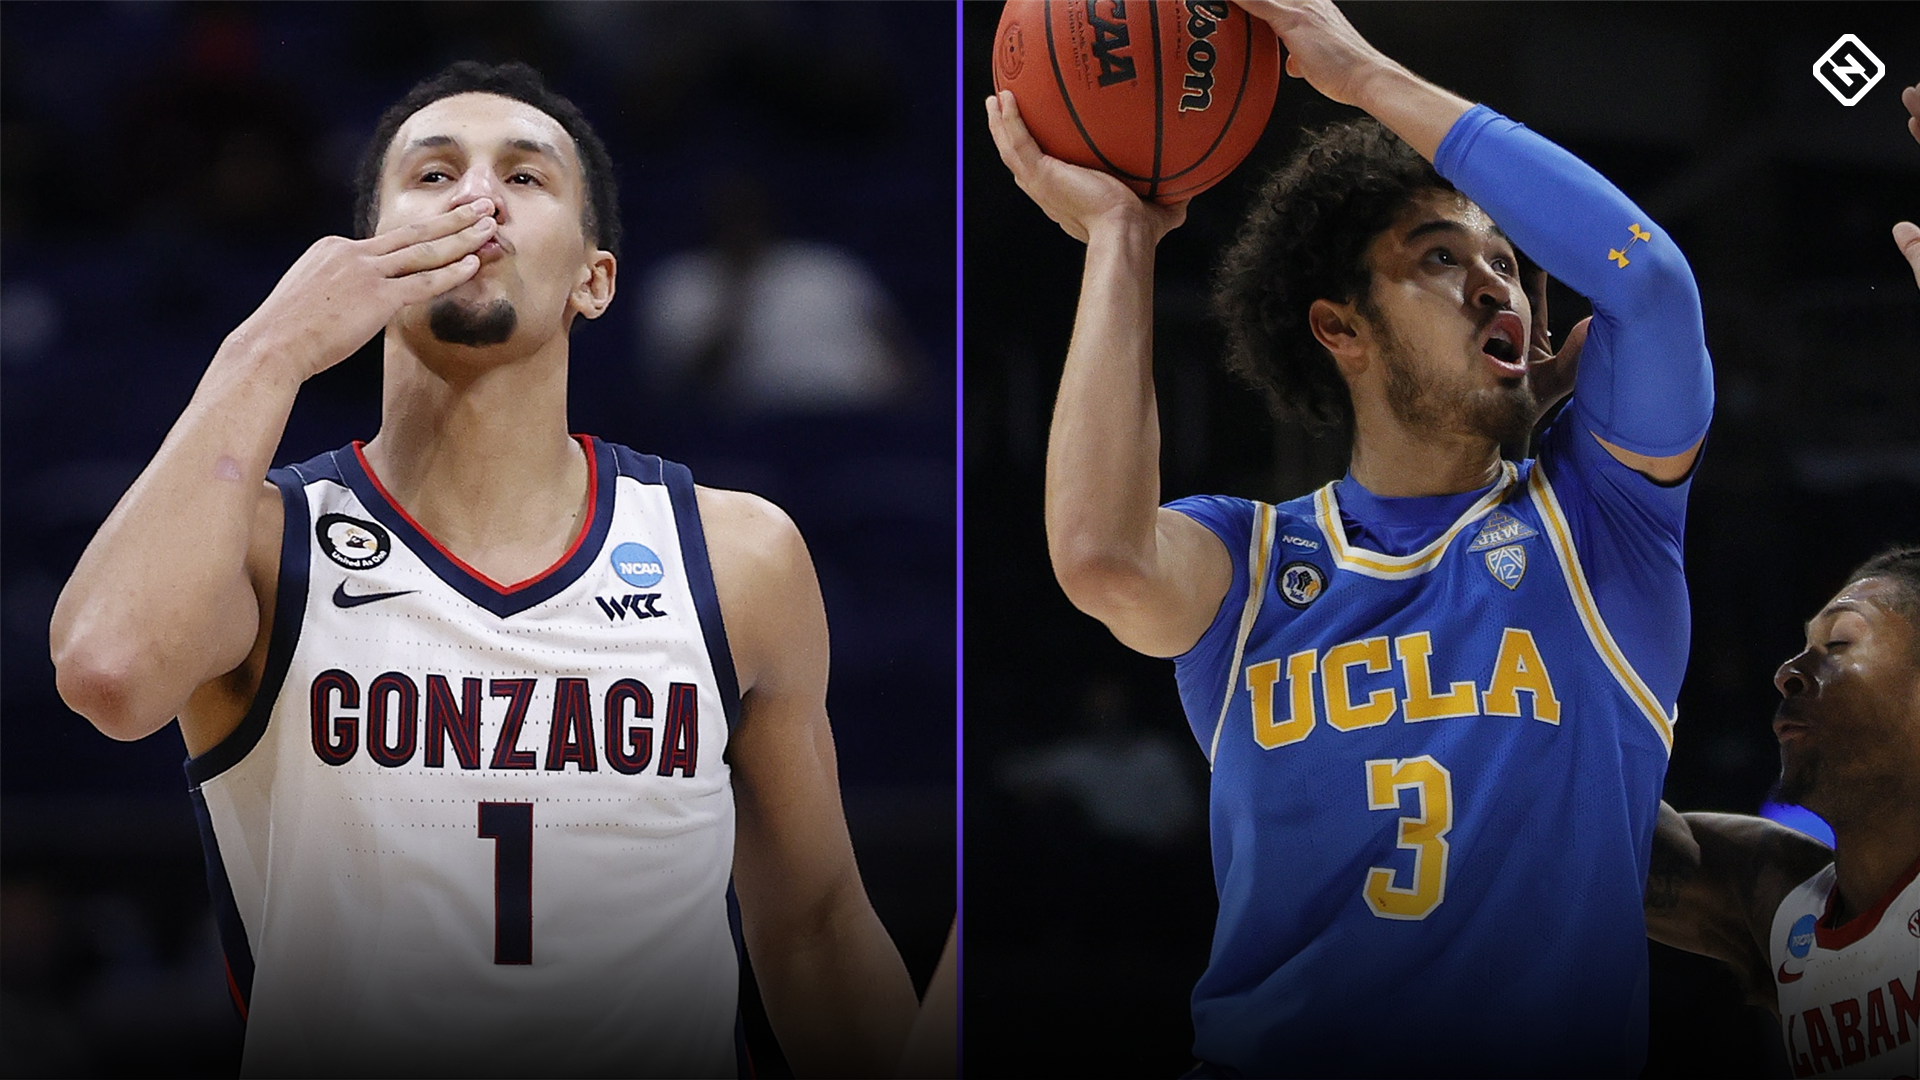 Gonzaga vs. UCLA live score, updates, highlights from 2021 Final Four game